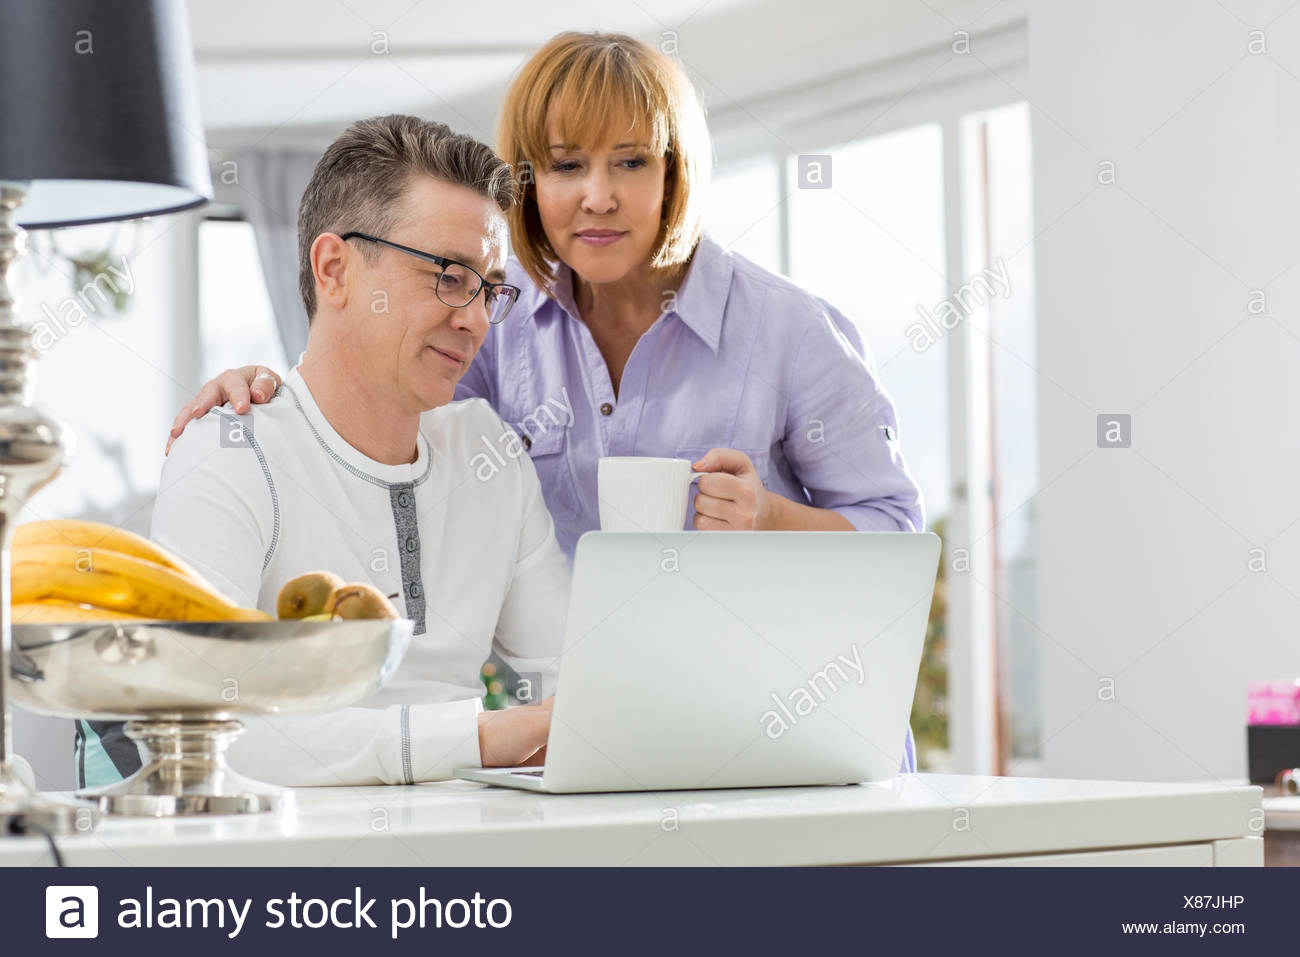 Mature couple using laptop together at table in house Stock Photo